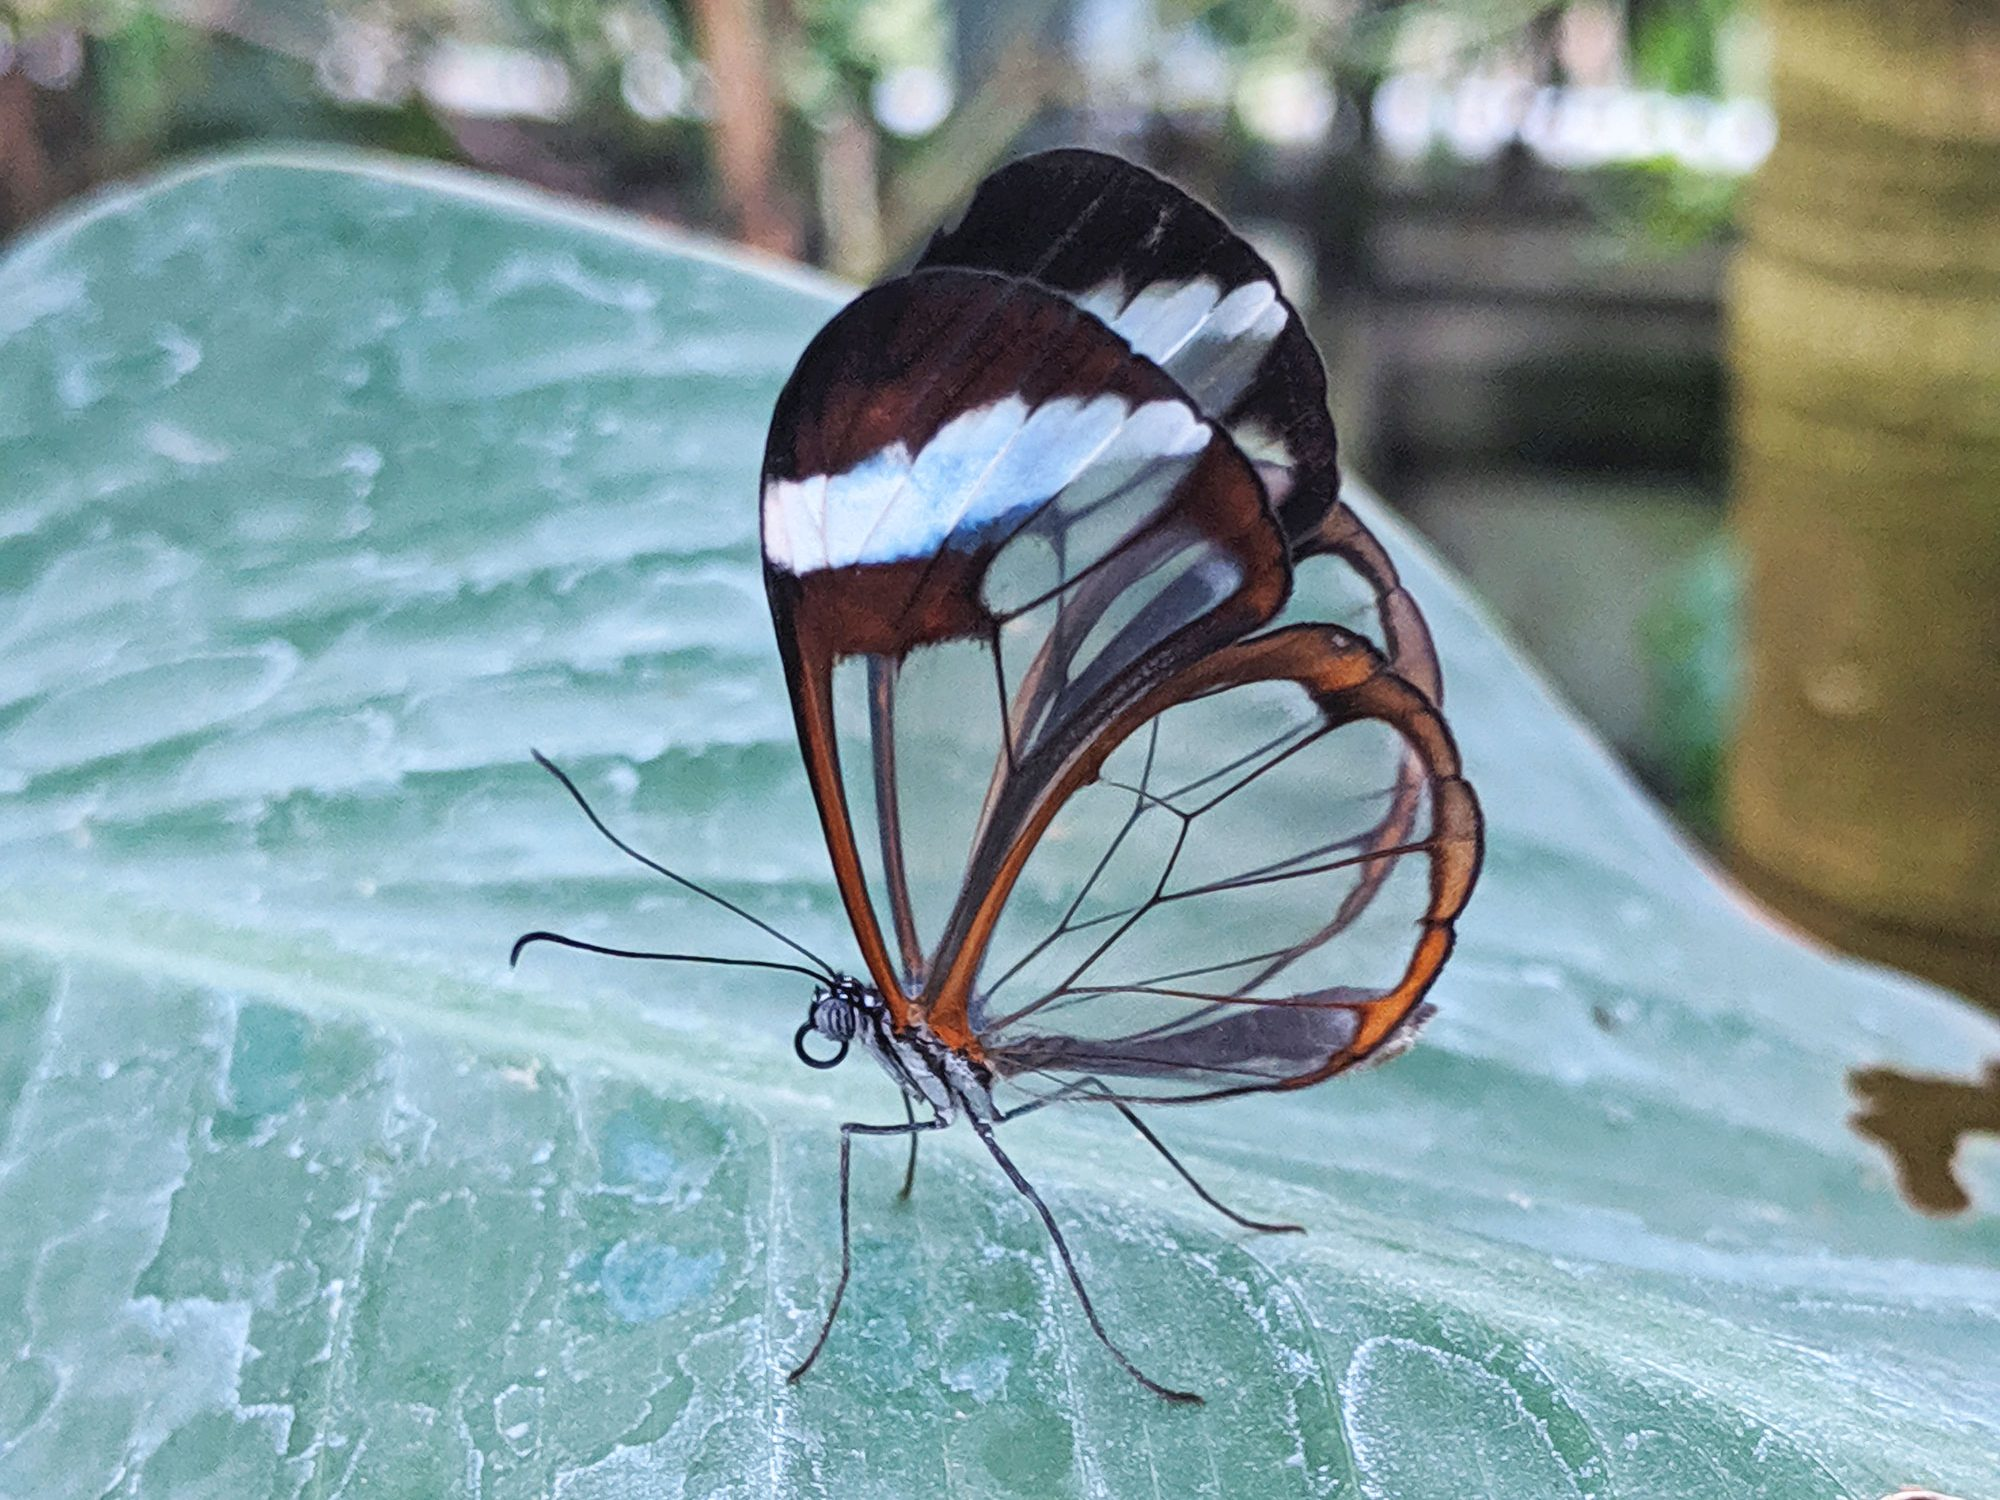 A butterfly with see through wings sat on a green water marked leaf.